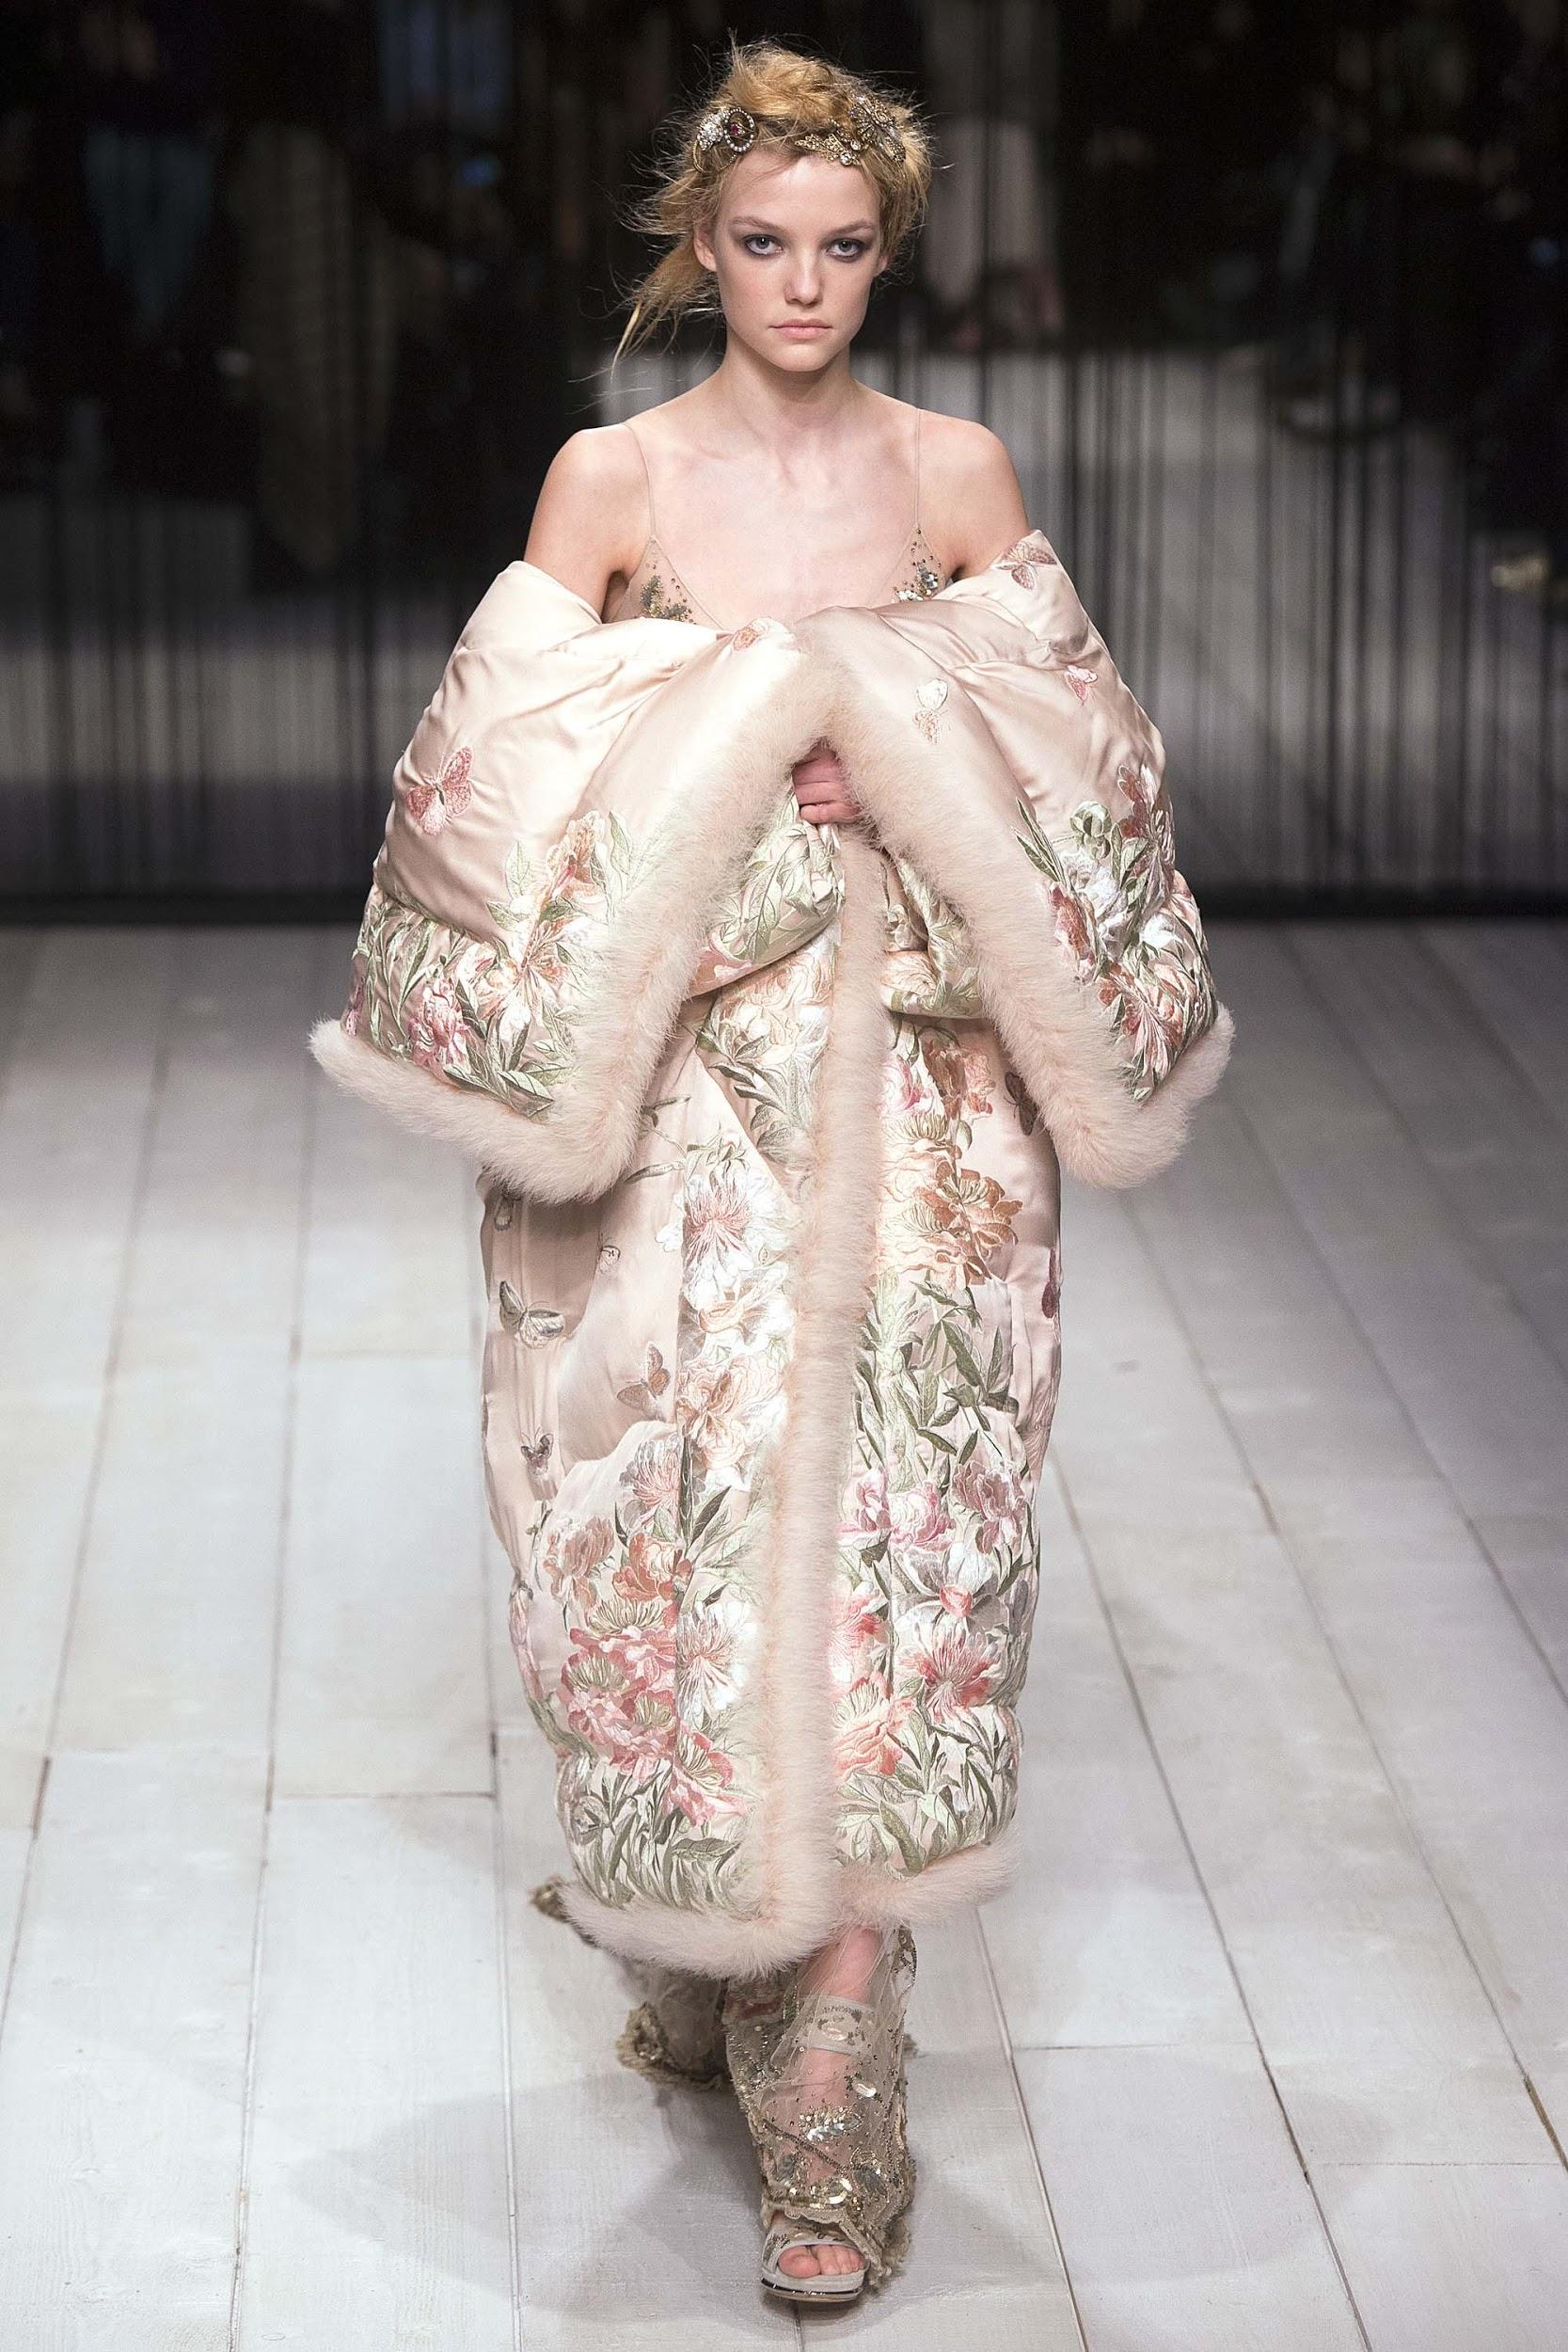 From Alexander McQueen fashion show: a model is wearing an extravagant extra long floral off-the-shoulders puffer coat